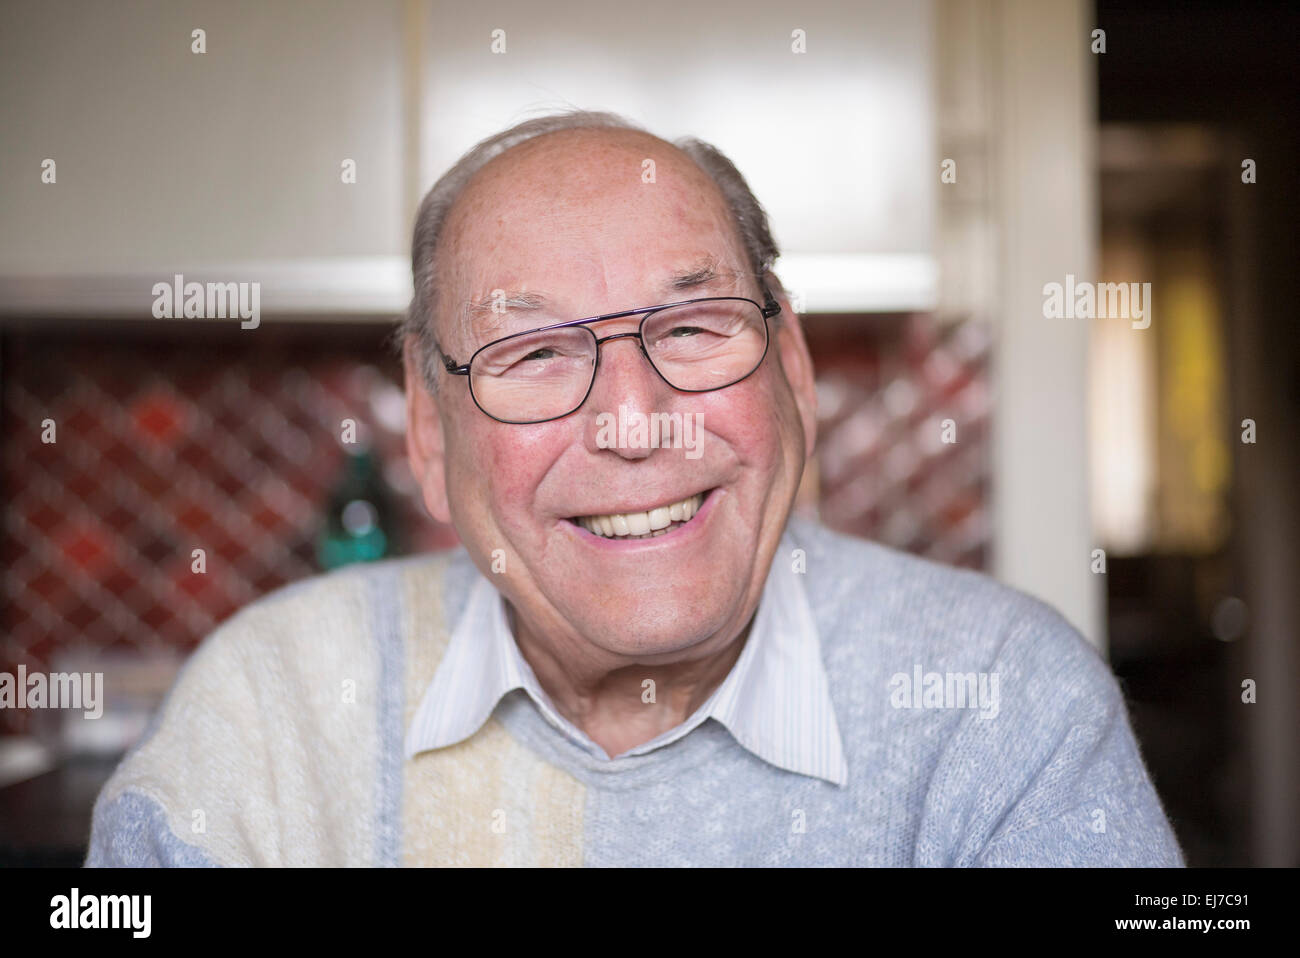 80s smiling elderly man portrait - Stock Image